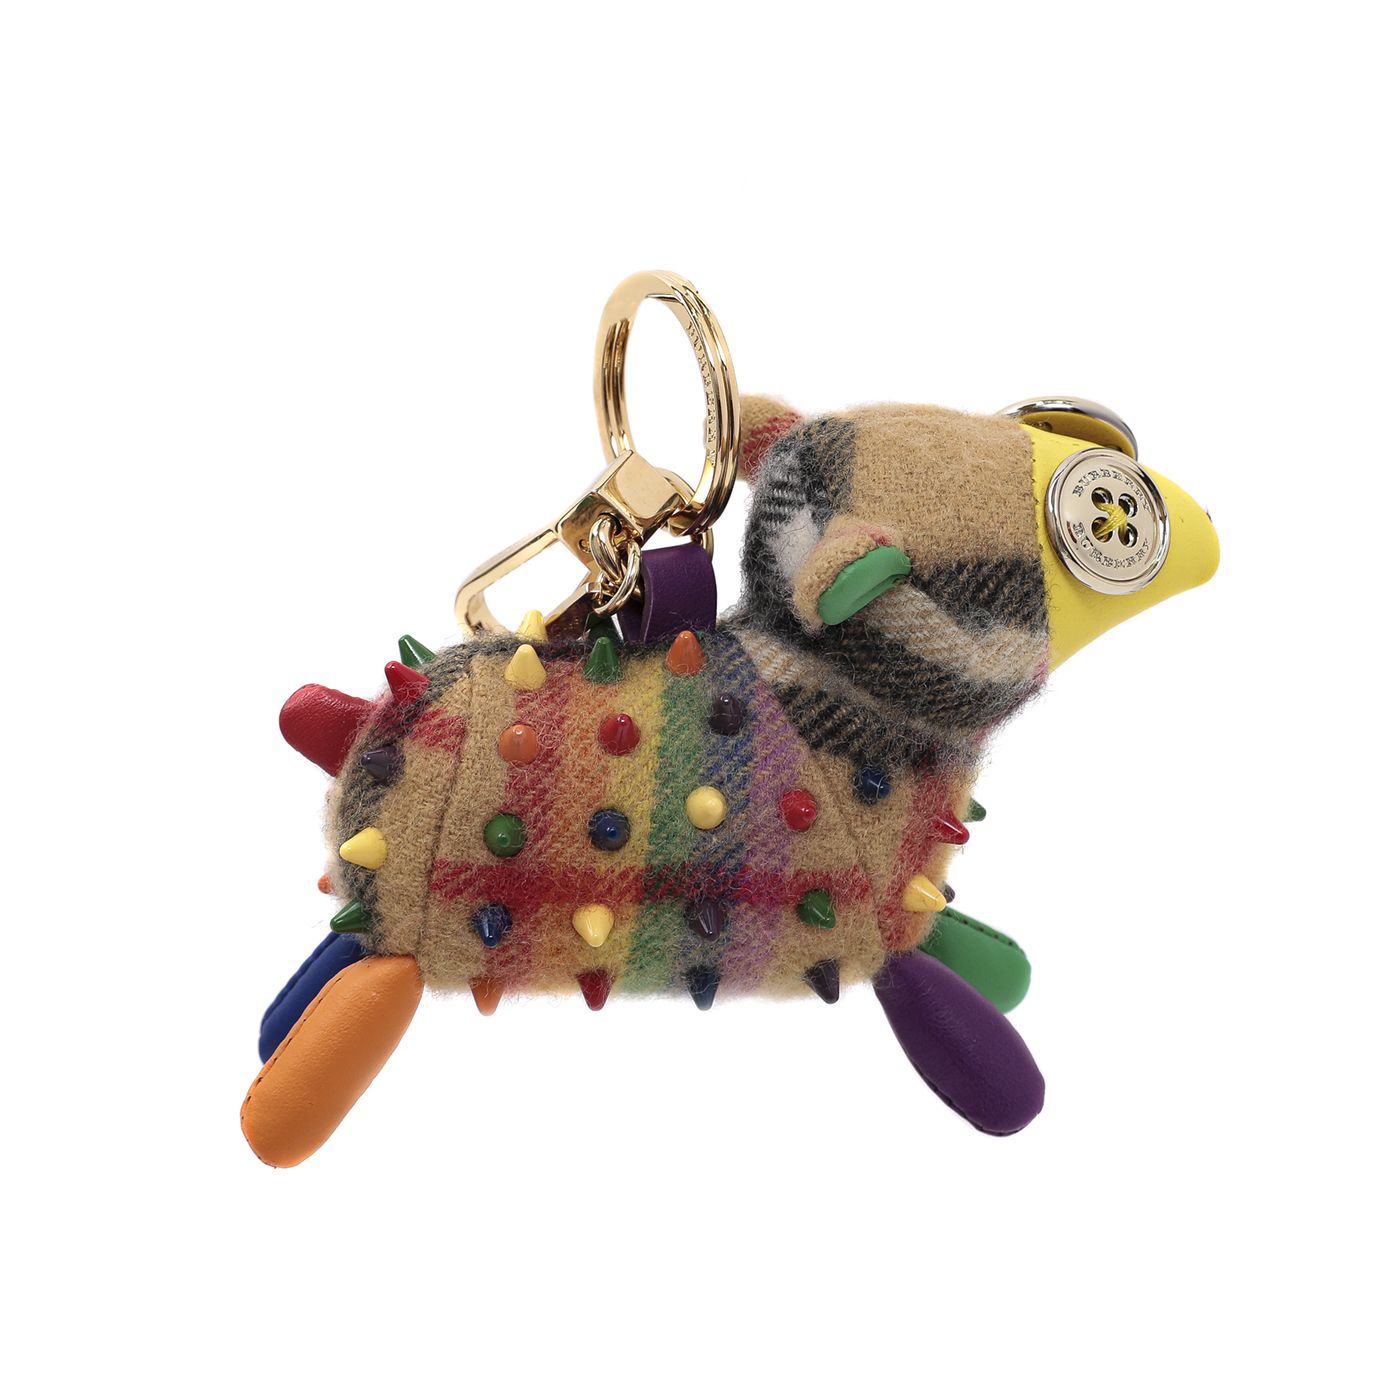 Burberry Multicolor Wendy The Sheep Bag Charm